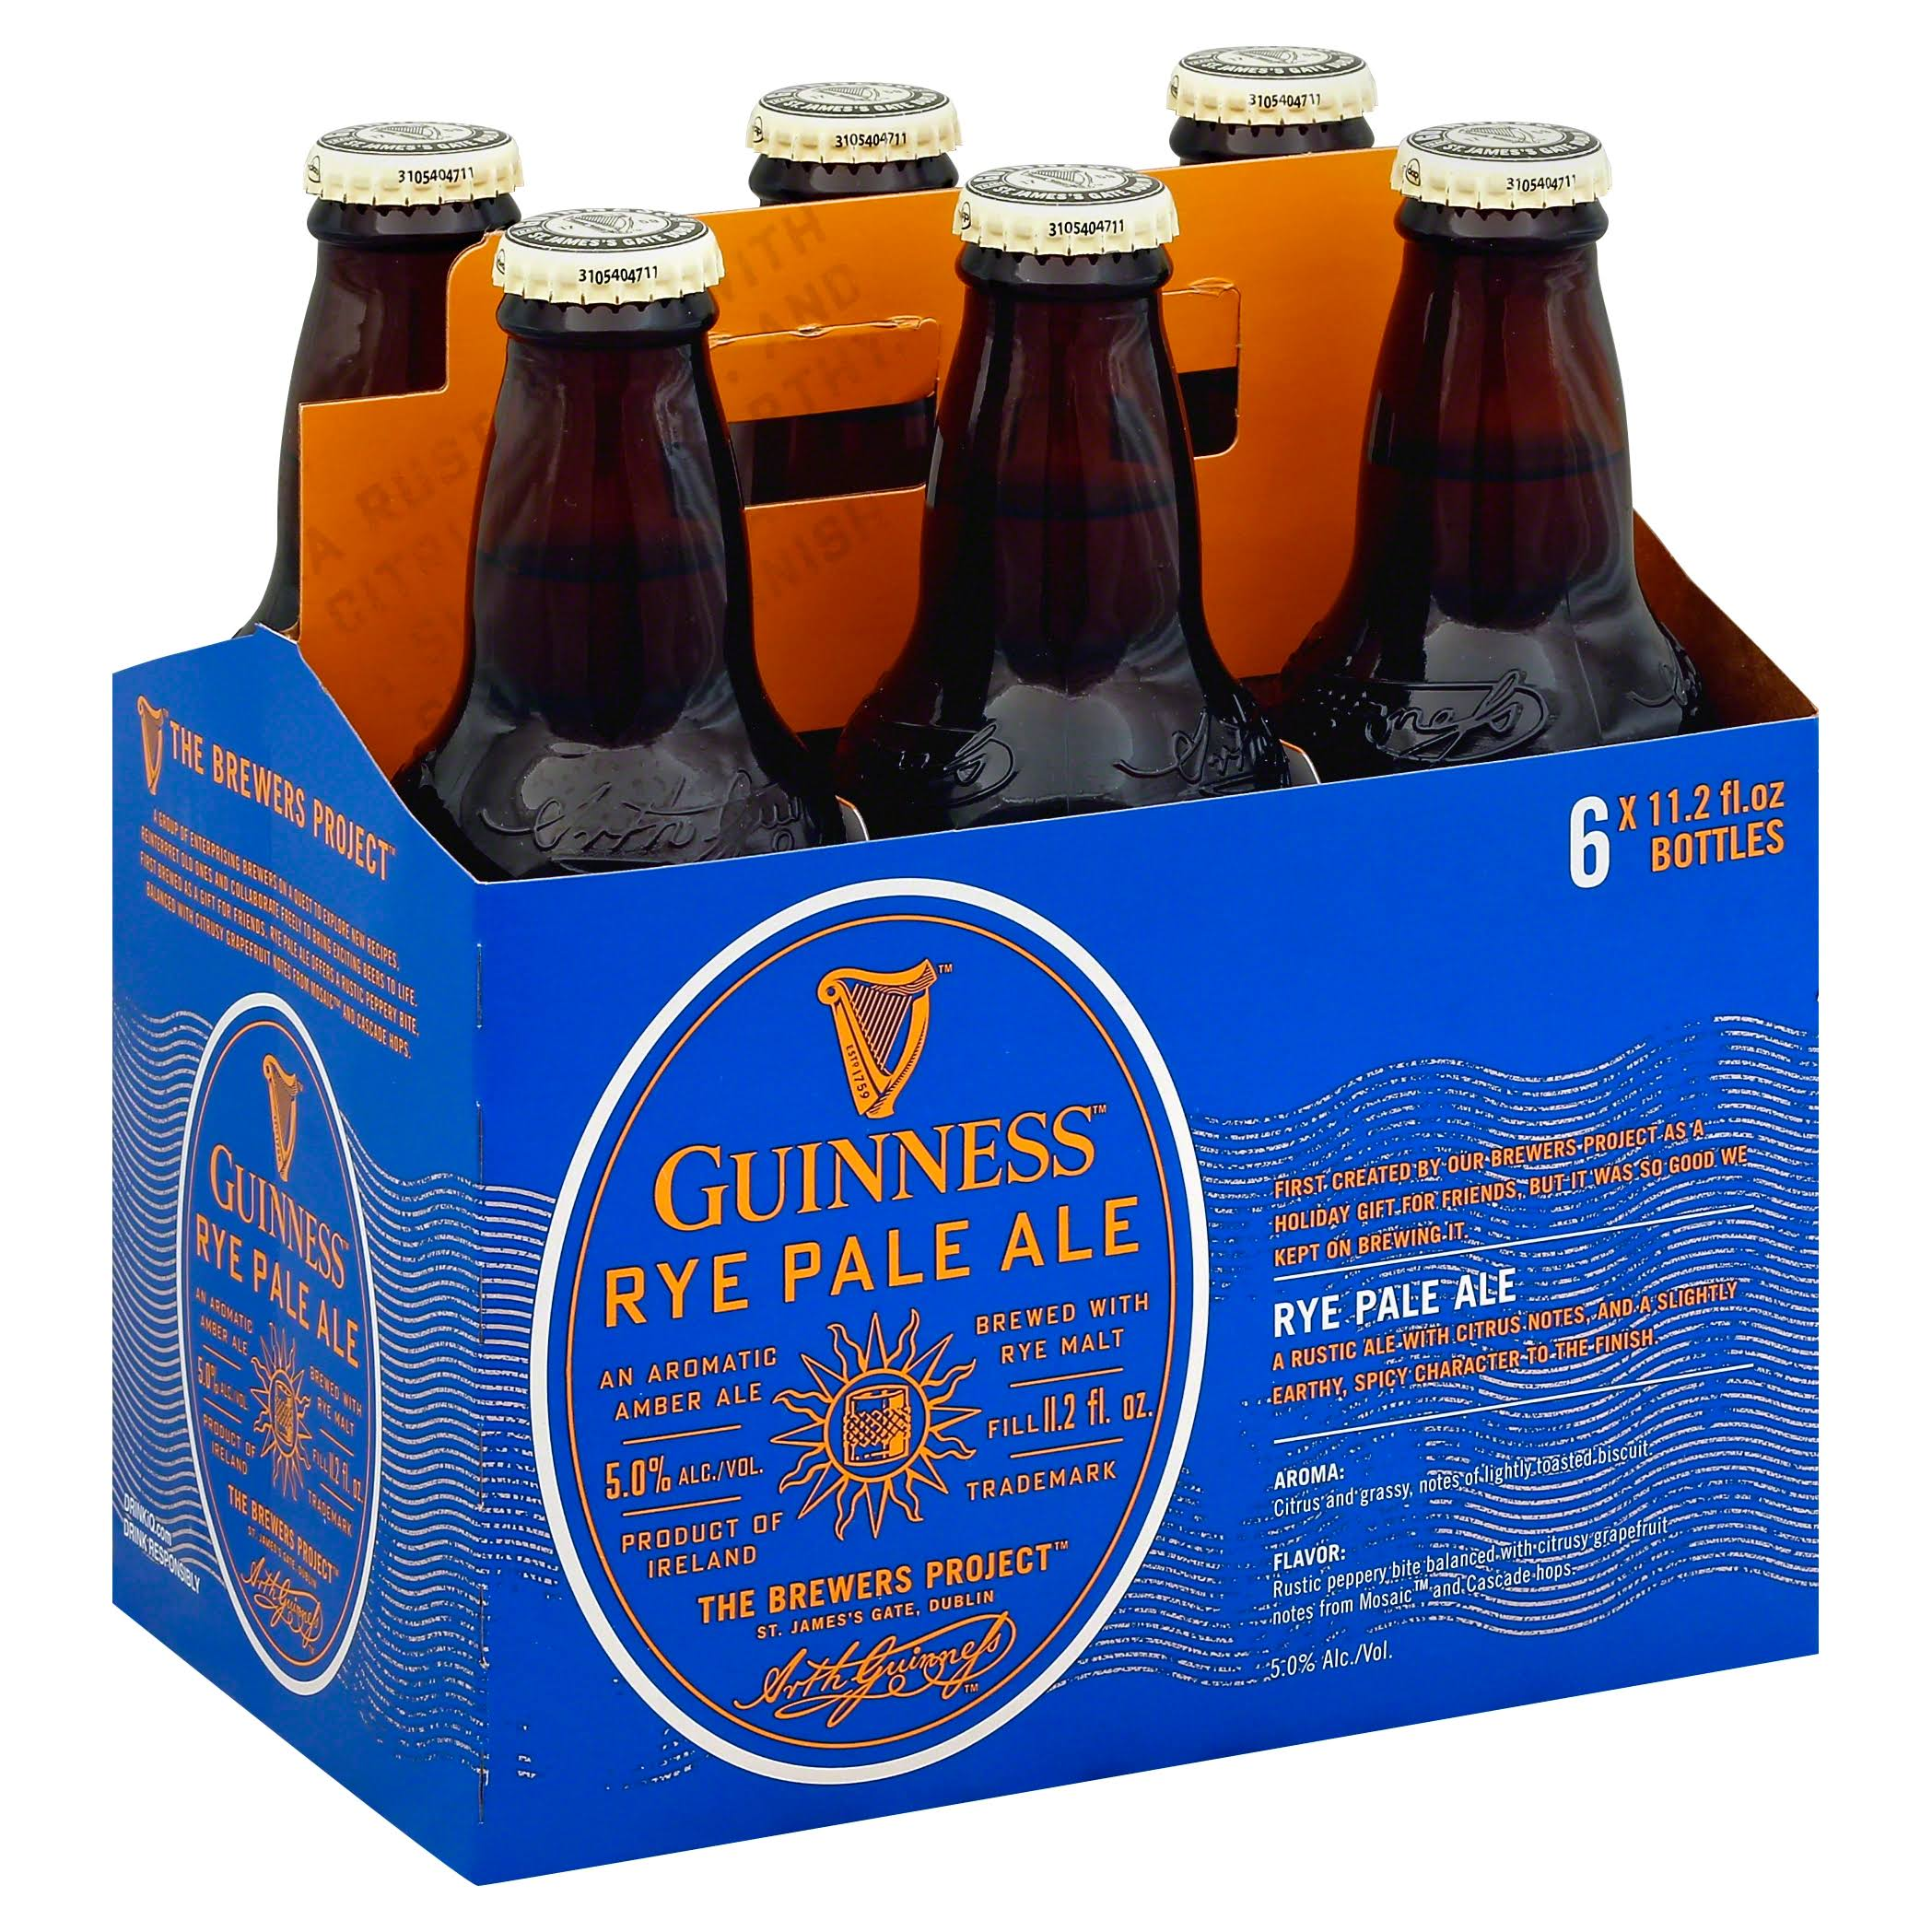 Guinness Beer, Rye Pale Ale - 6 pack, 11.2 fl oz bottles